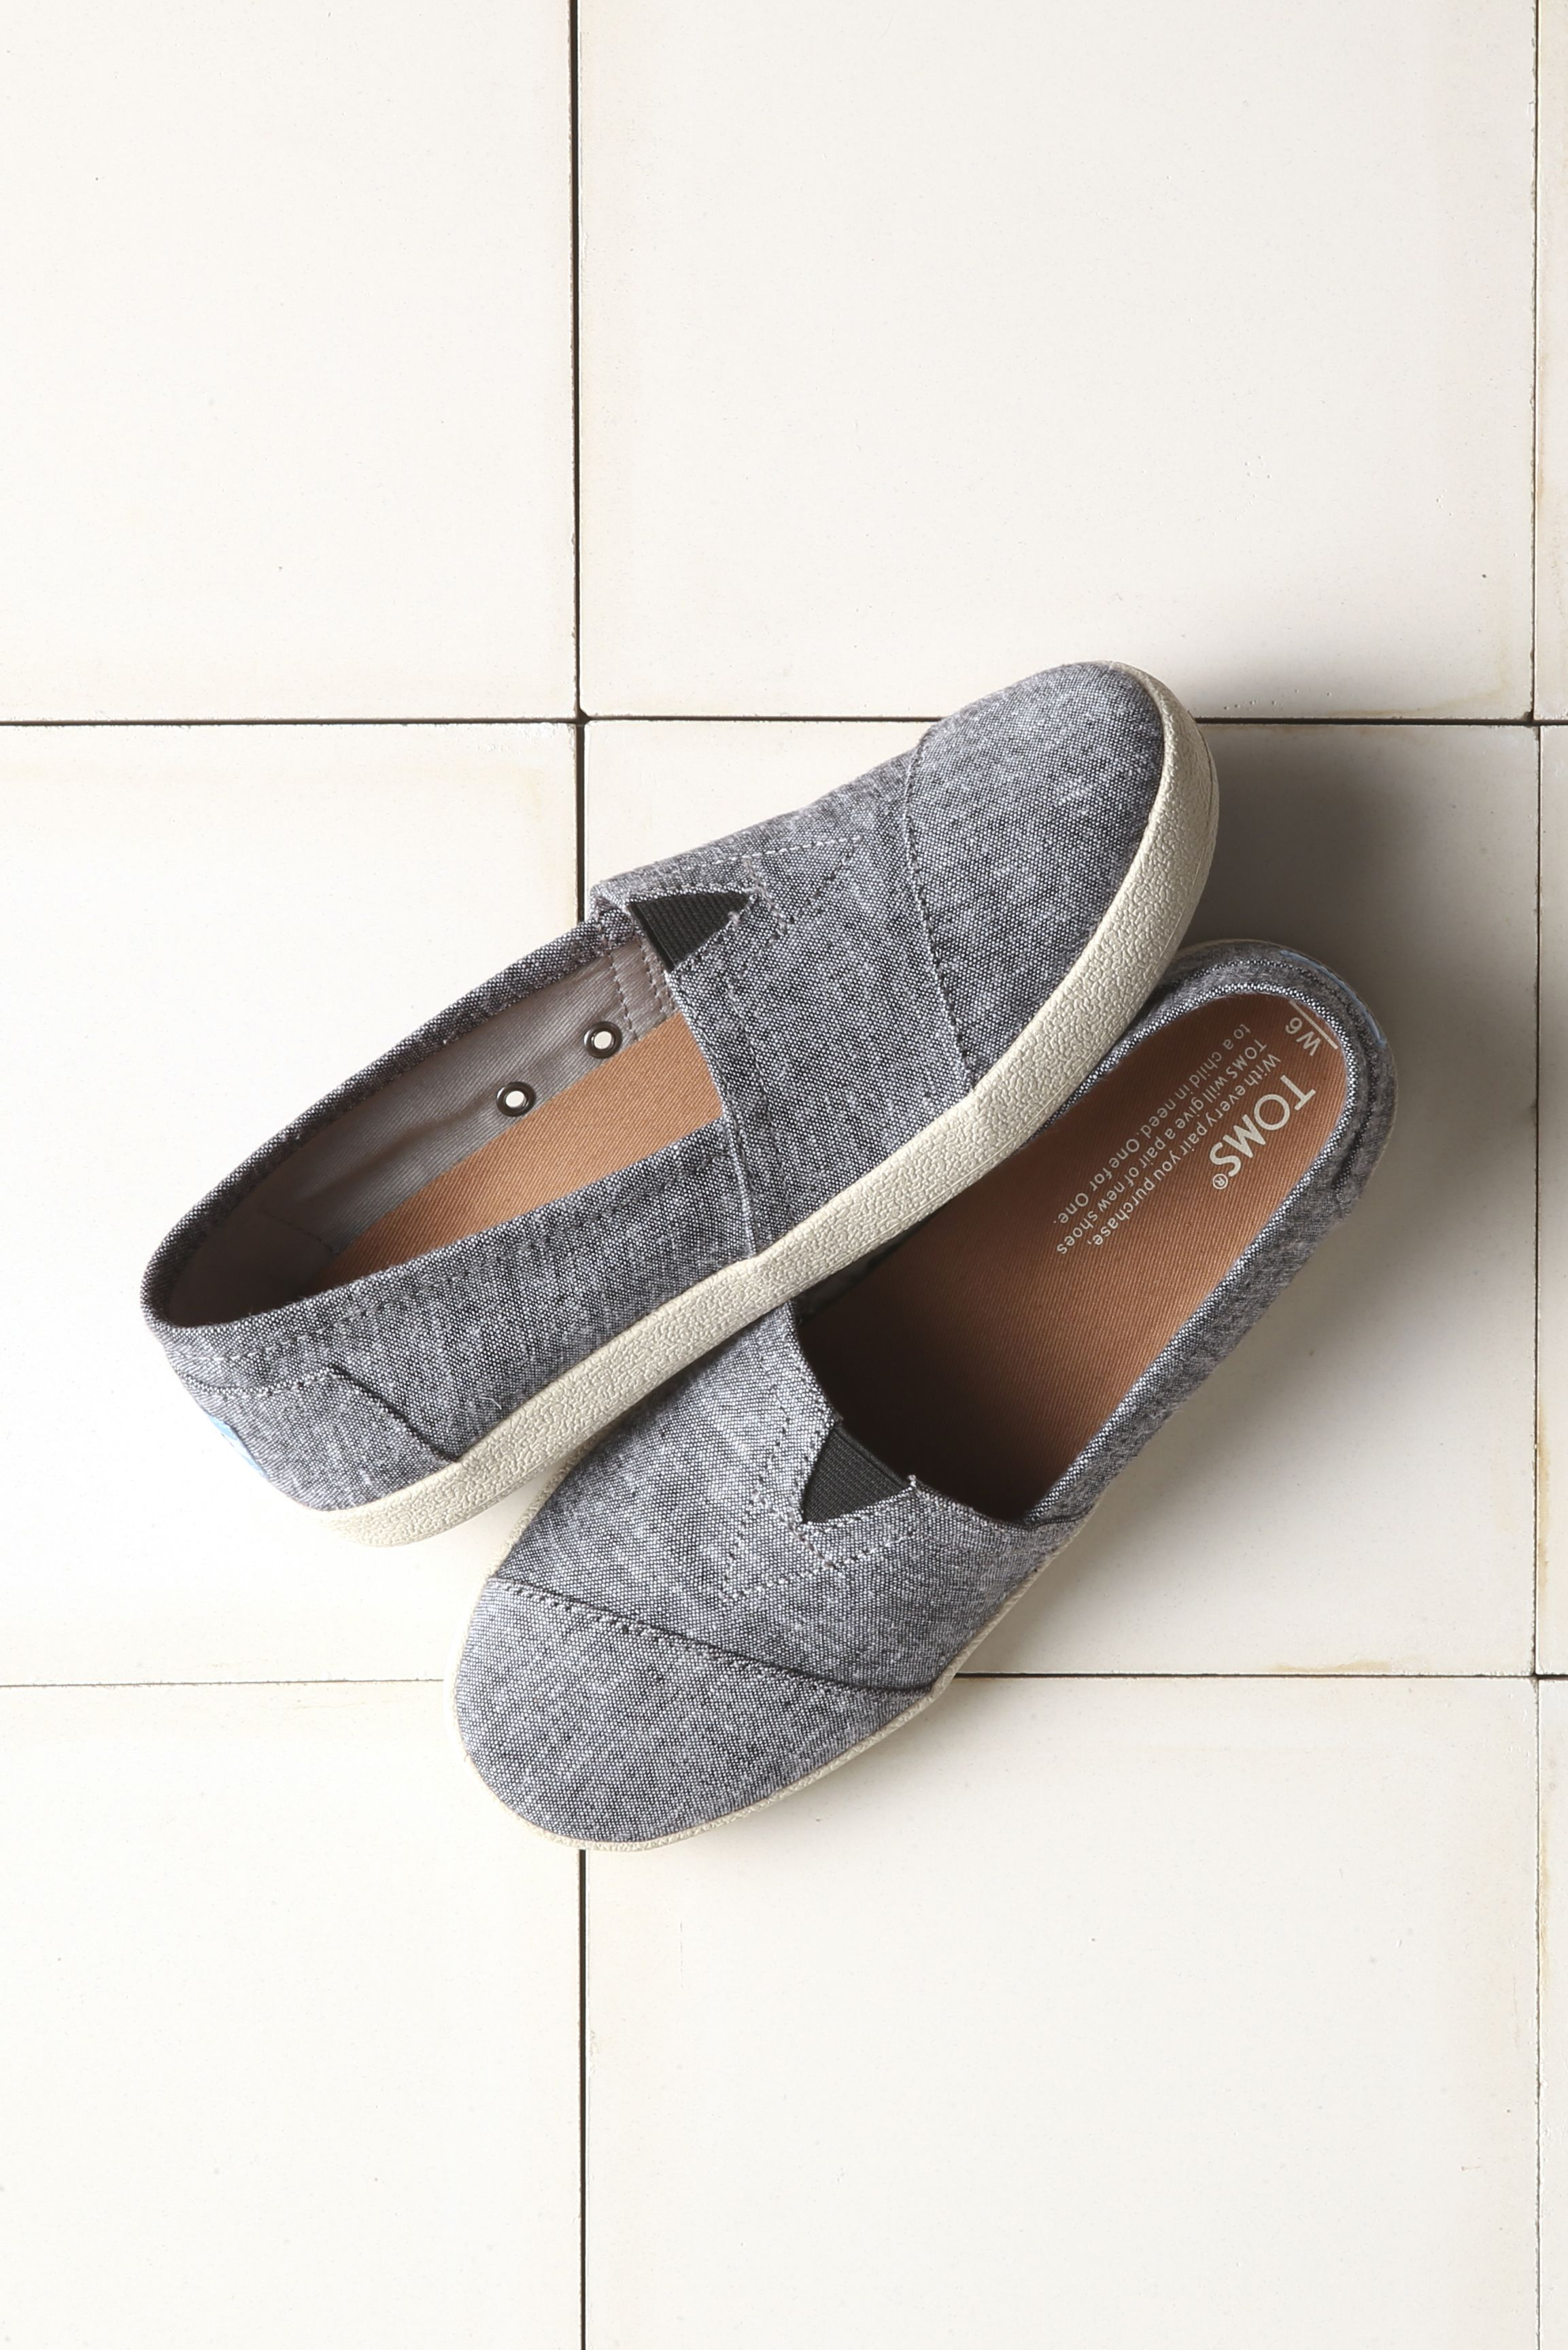 d39349a6257a All the goodness of TOMS Classics with added comfort and durability